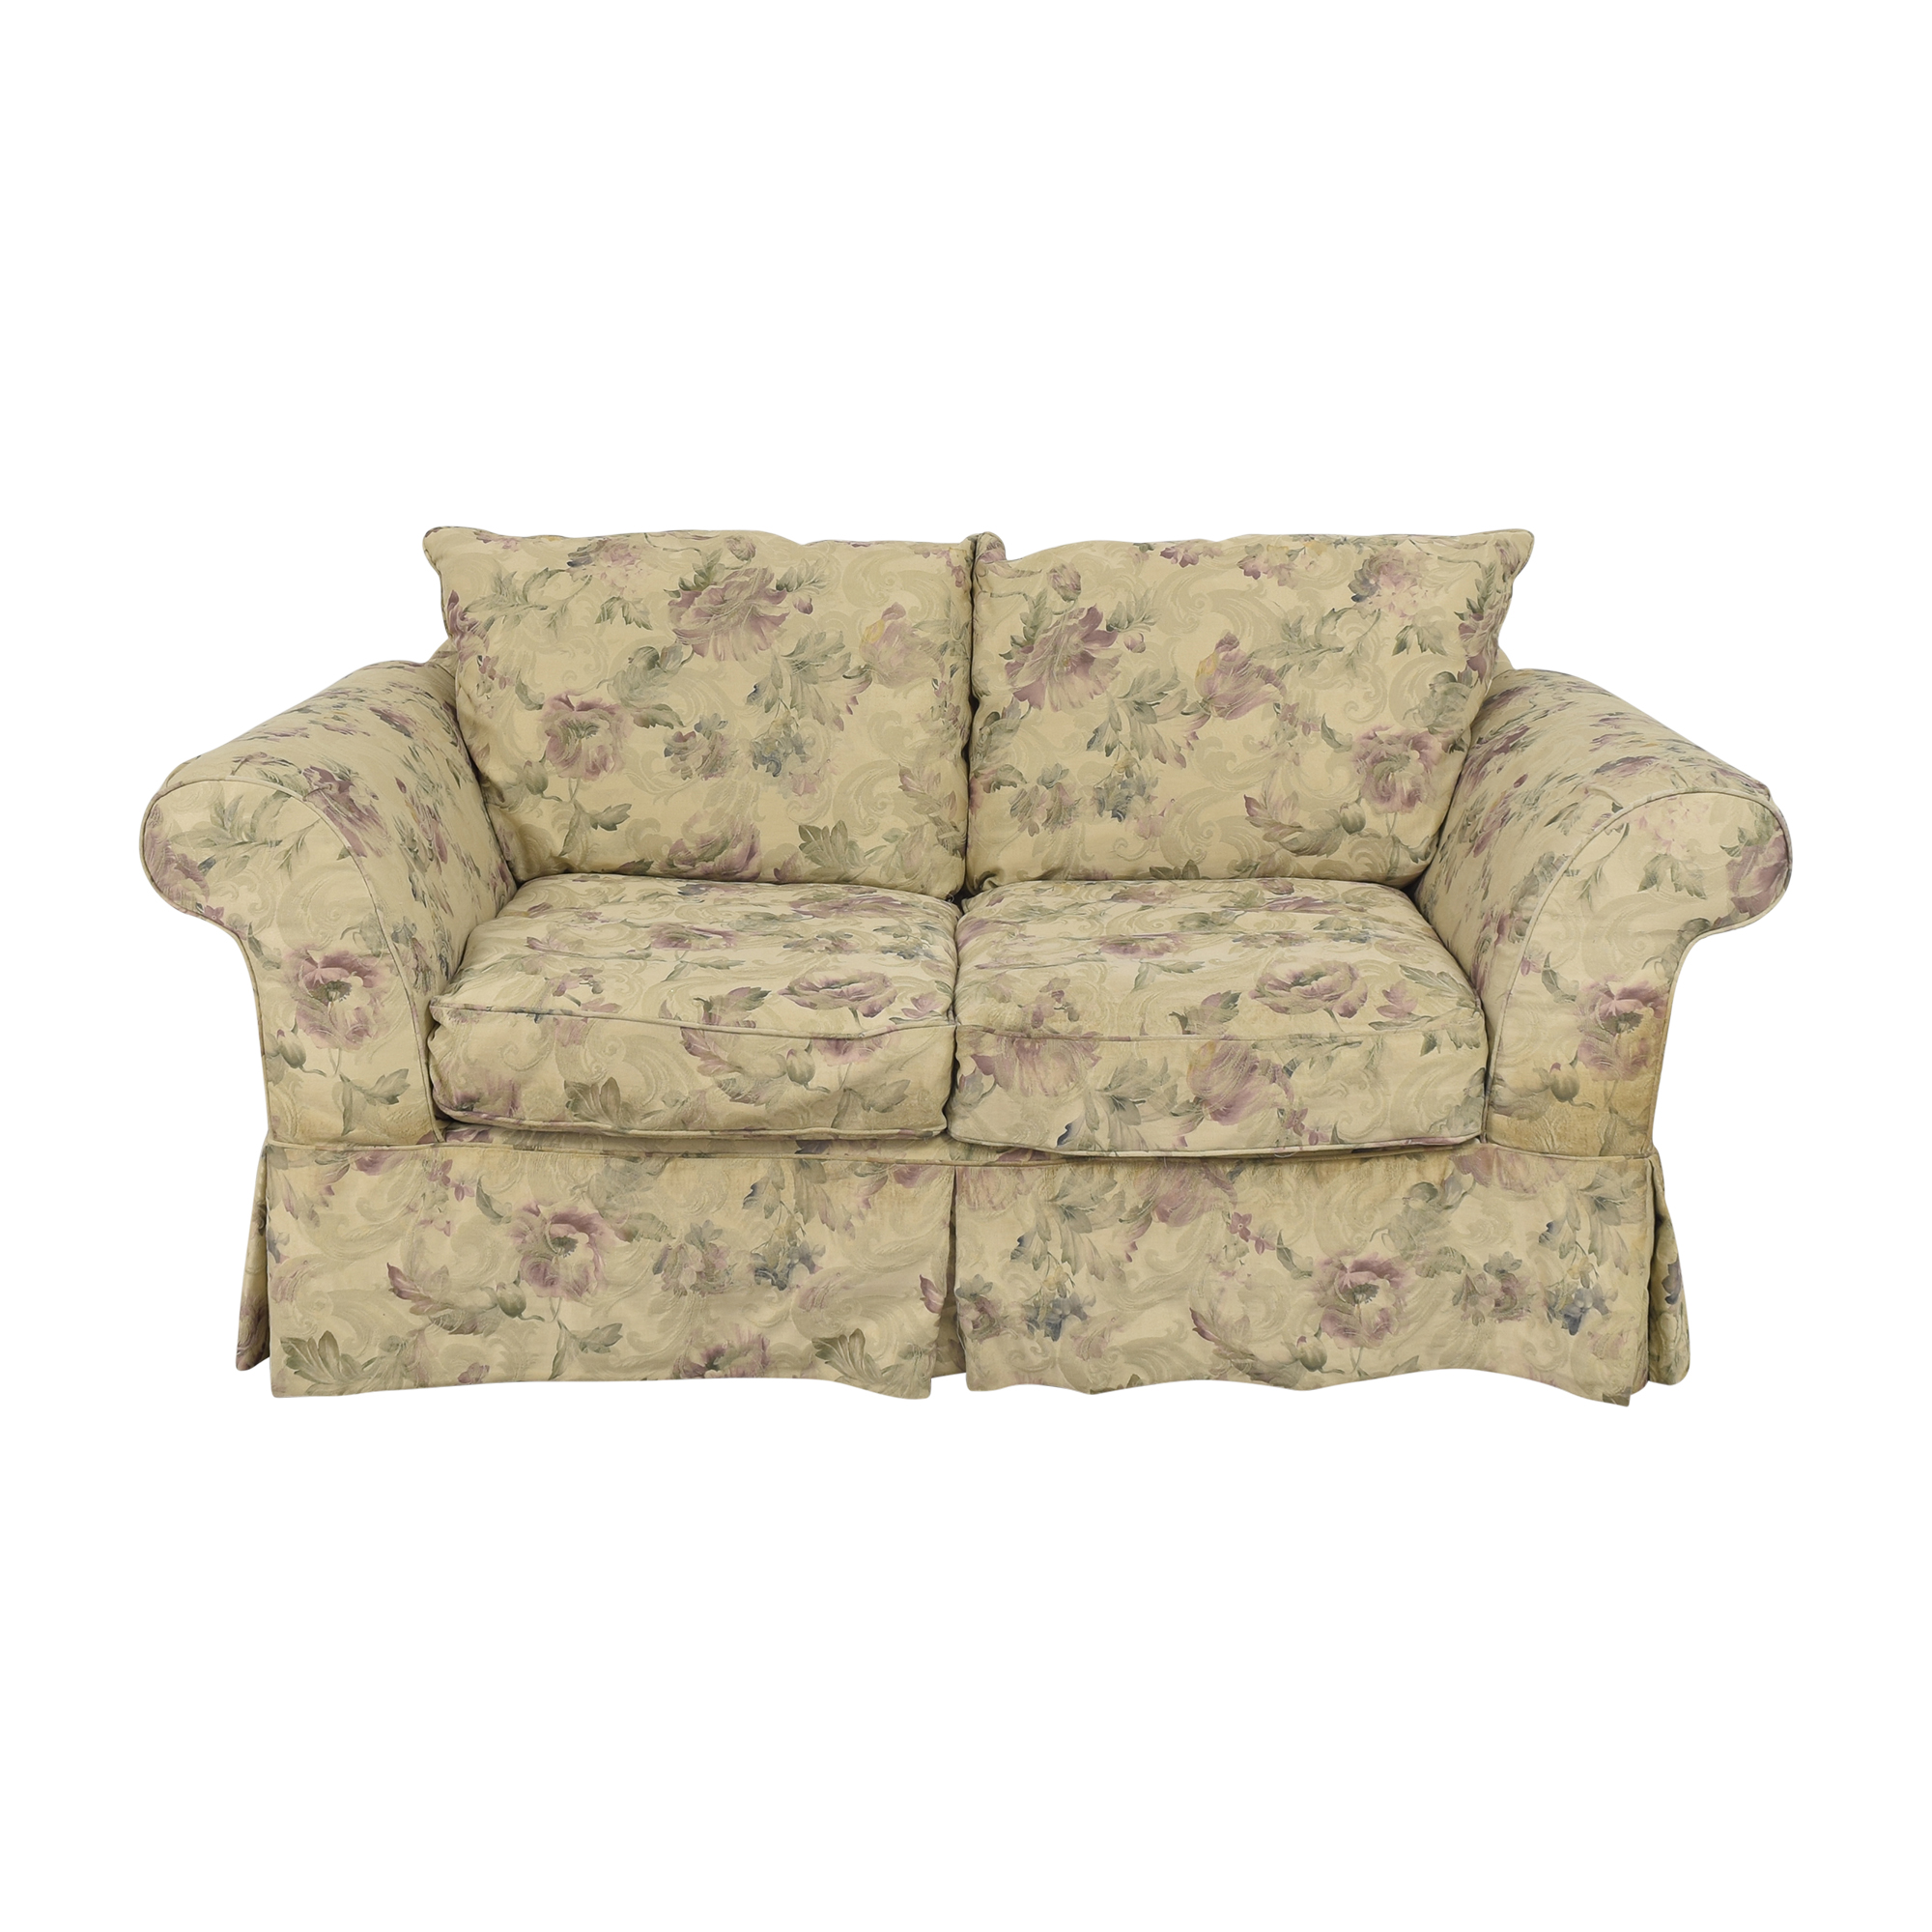 Domain Home Domain Home Floral Two Seat Sofa discount